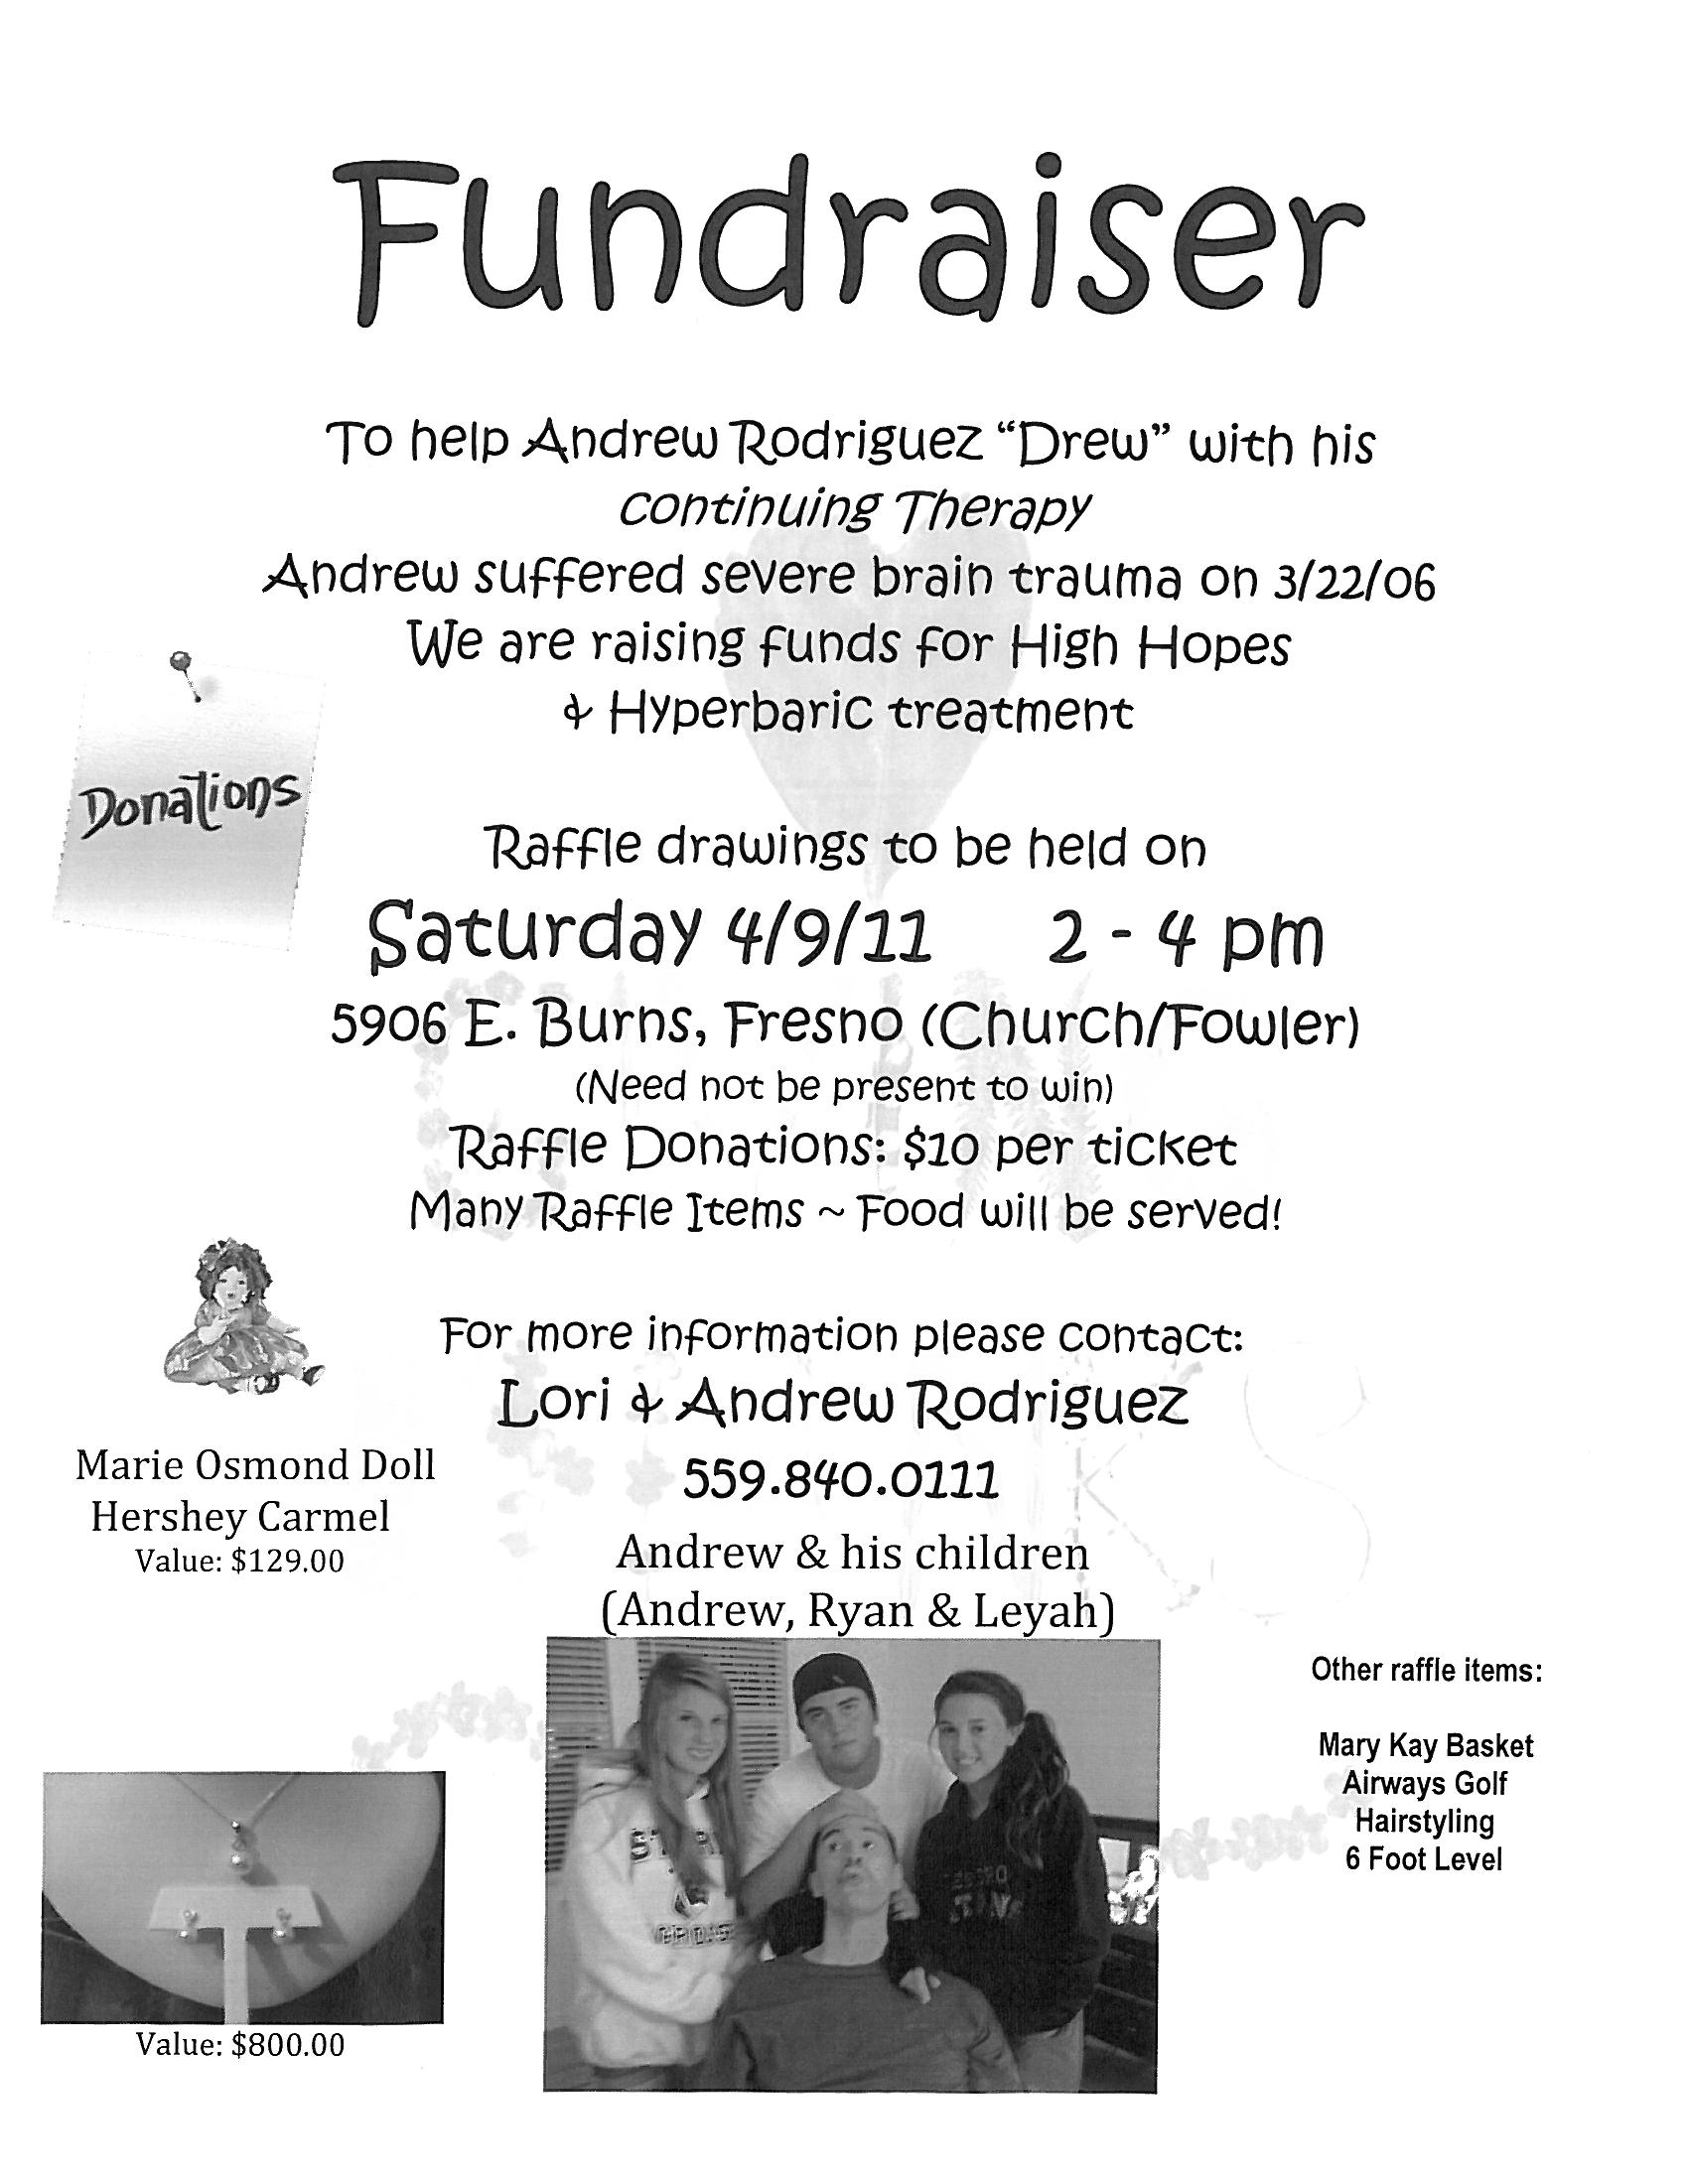 Fundraiser Invitations